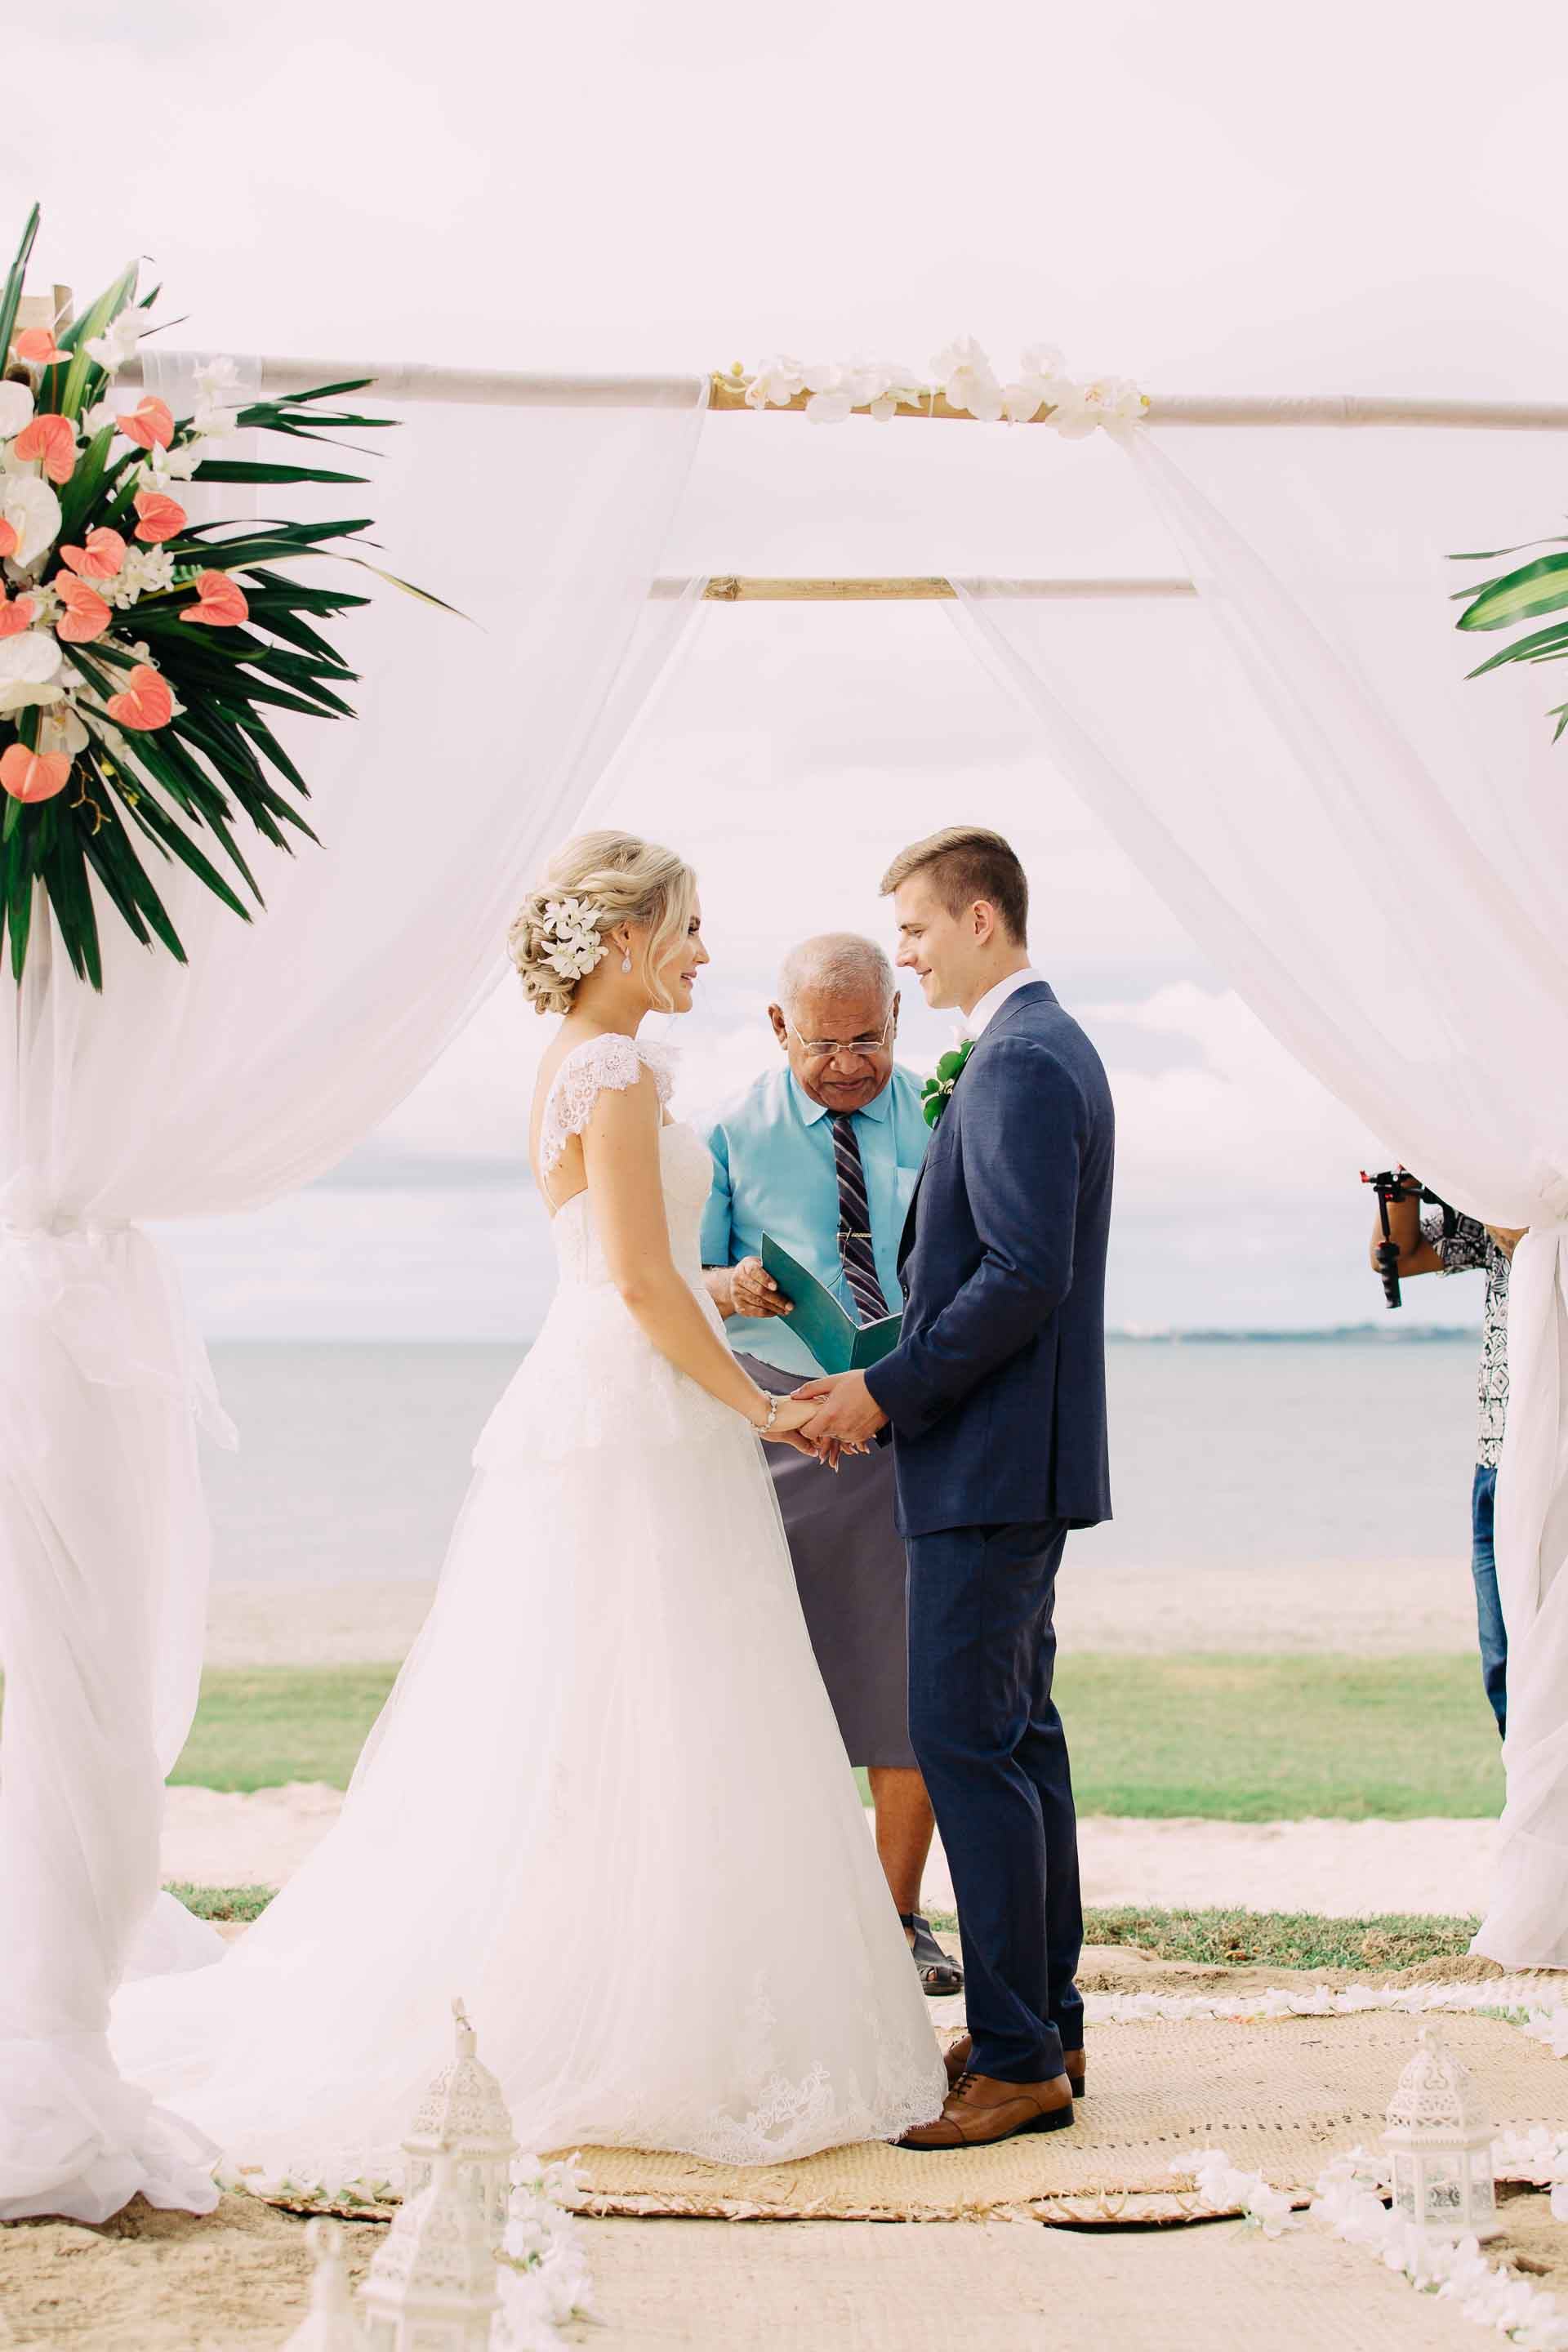 Beautiful beach marriage ceremony with a celebrant to officiate the union.